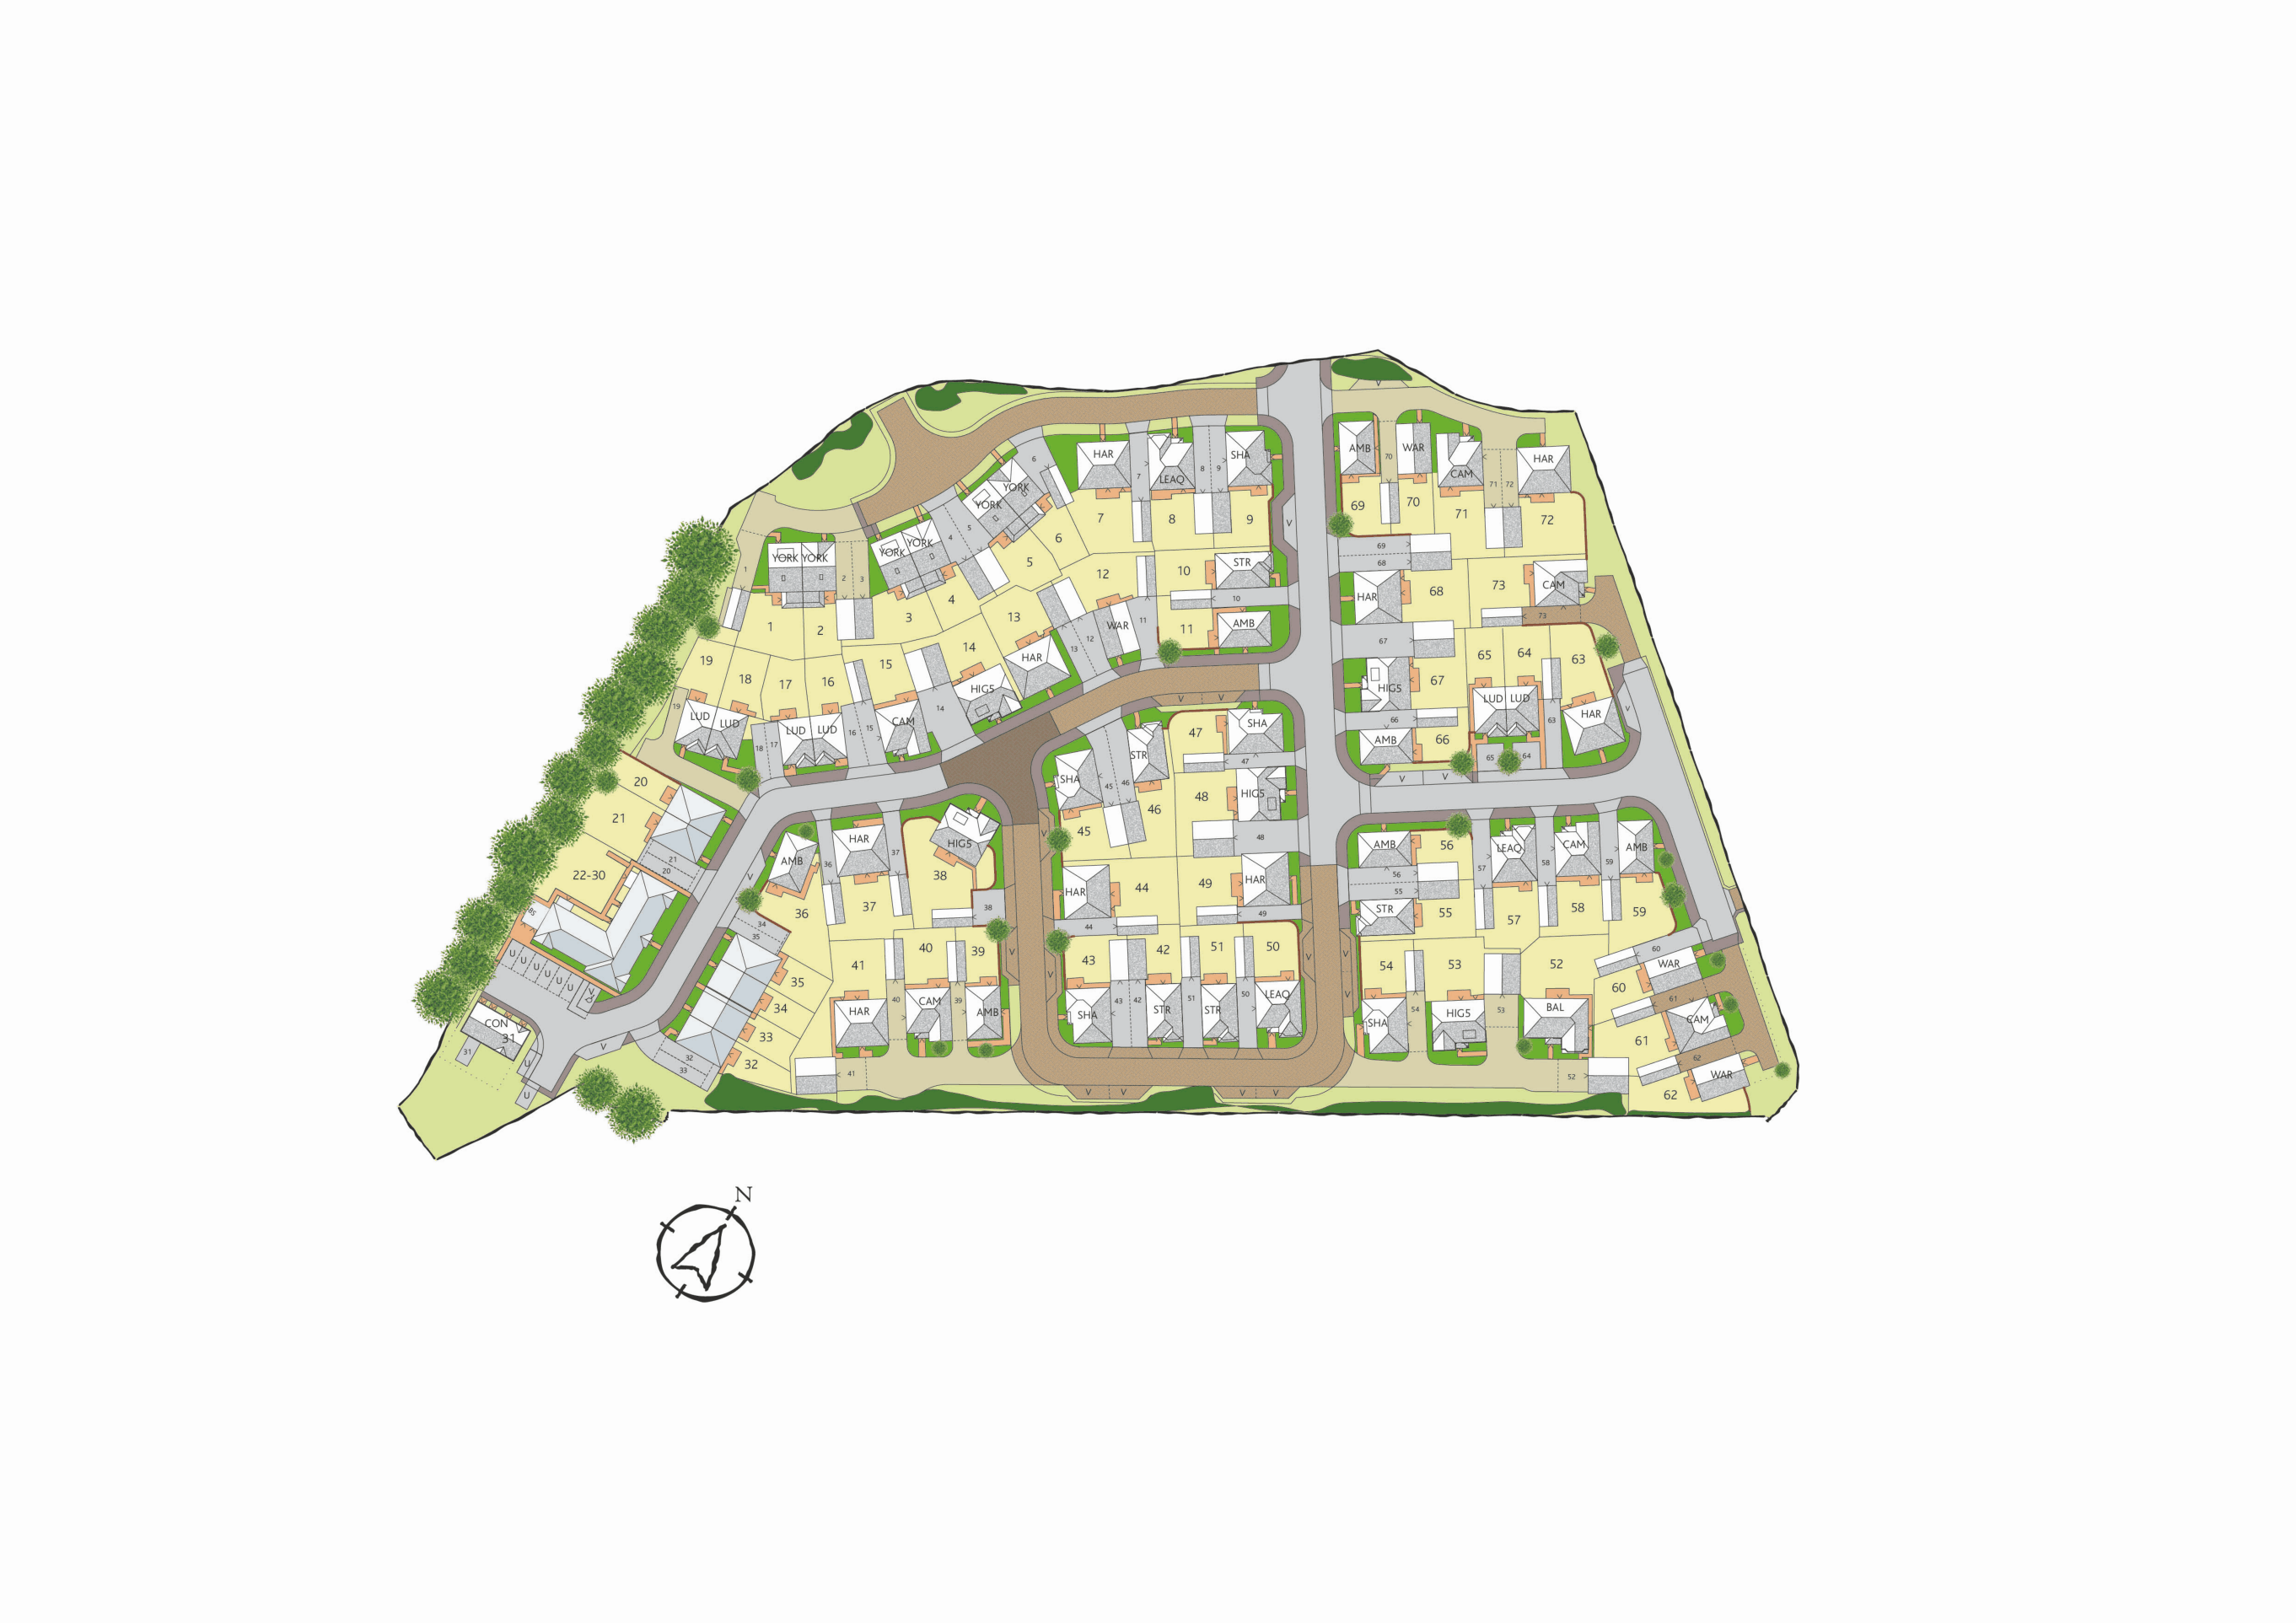 Interactive Site Plan 7471v3 plan